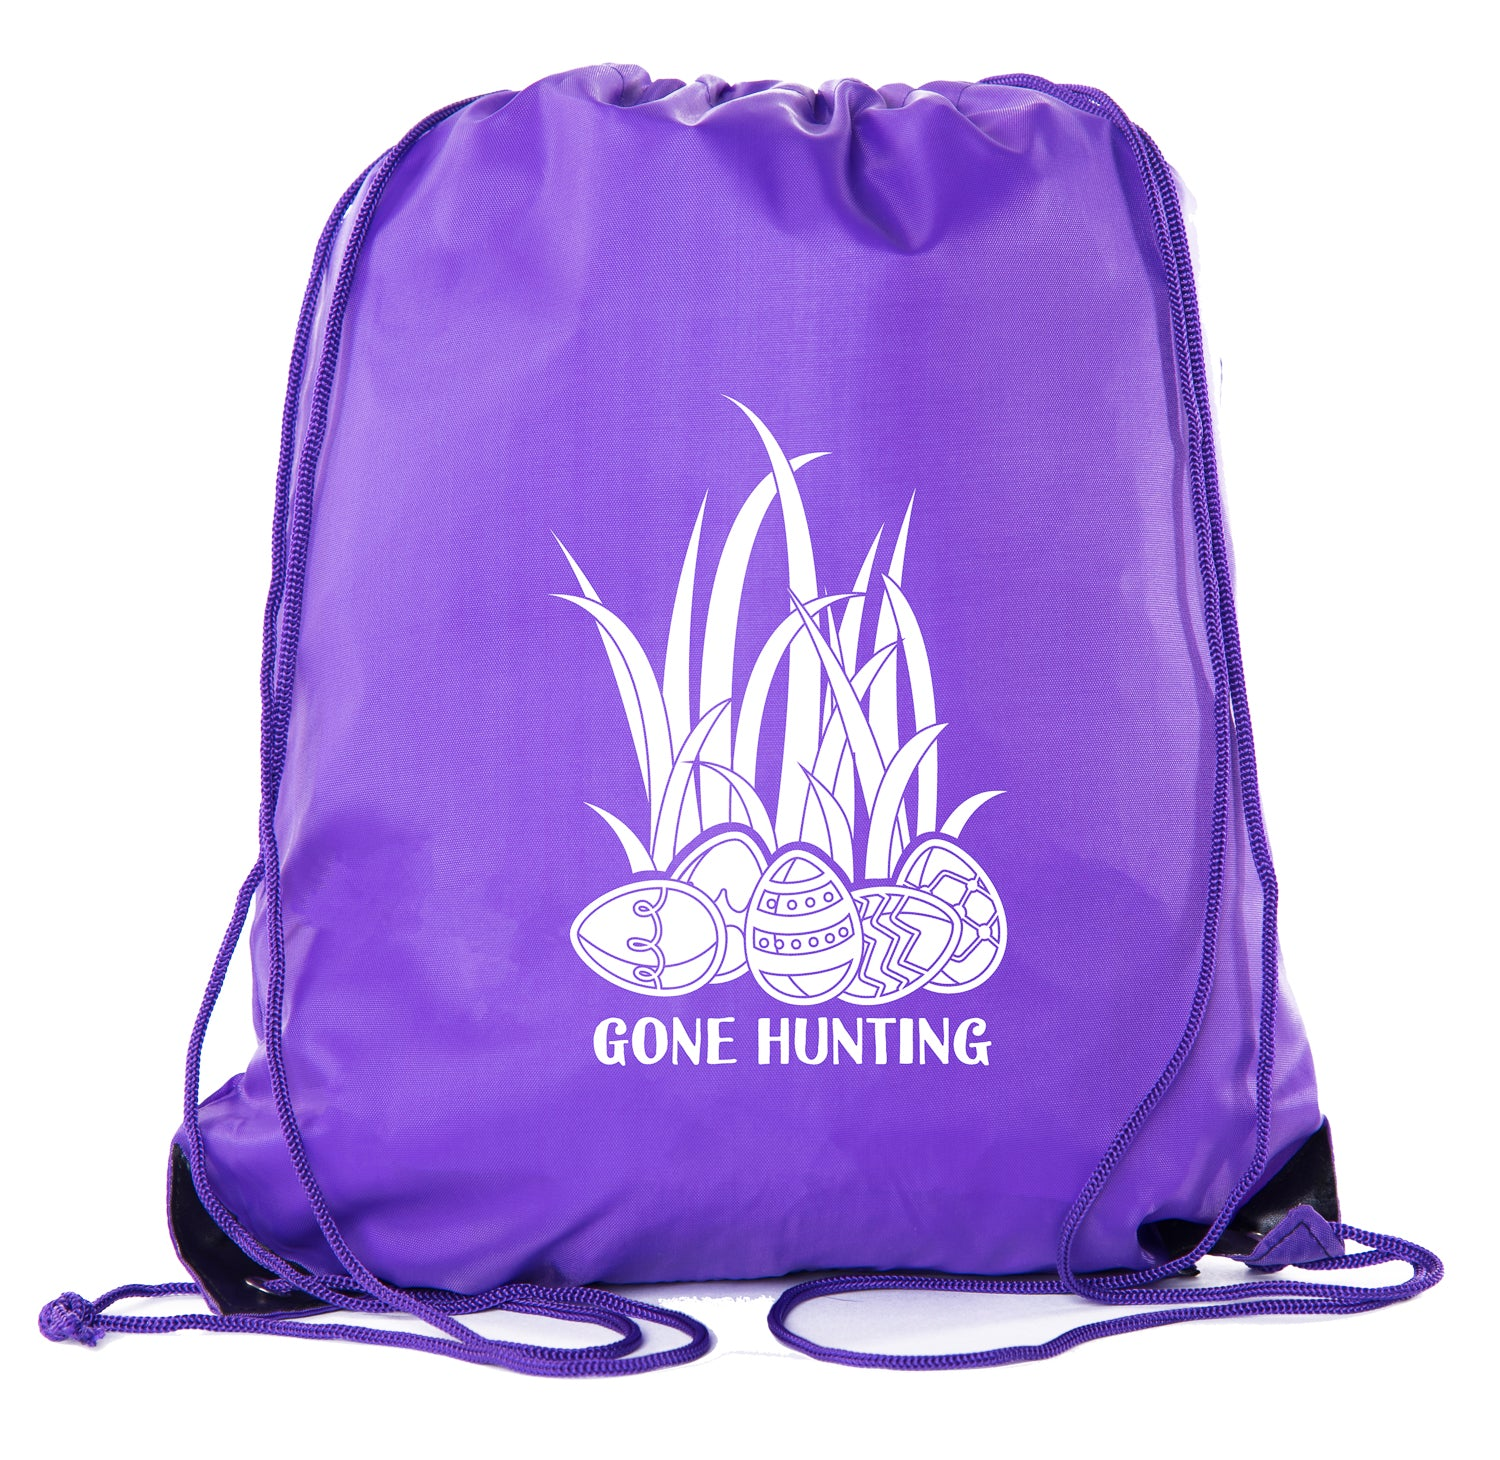 Gone Hunting - Colorful Eggs in Grass Color in Polyester Drawstring Bag